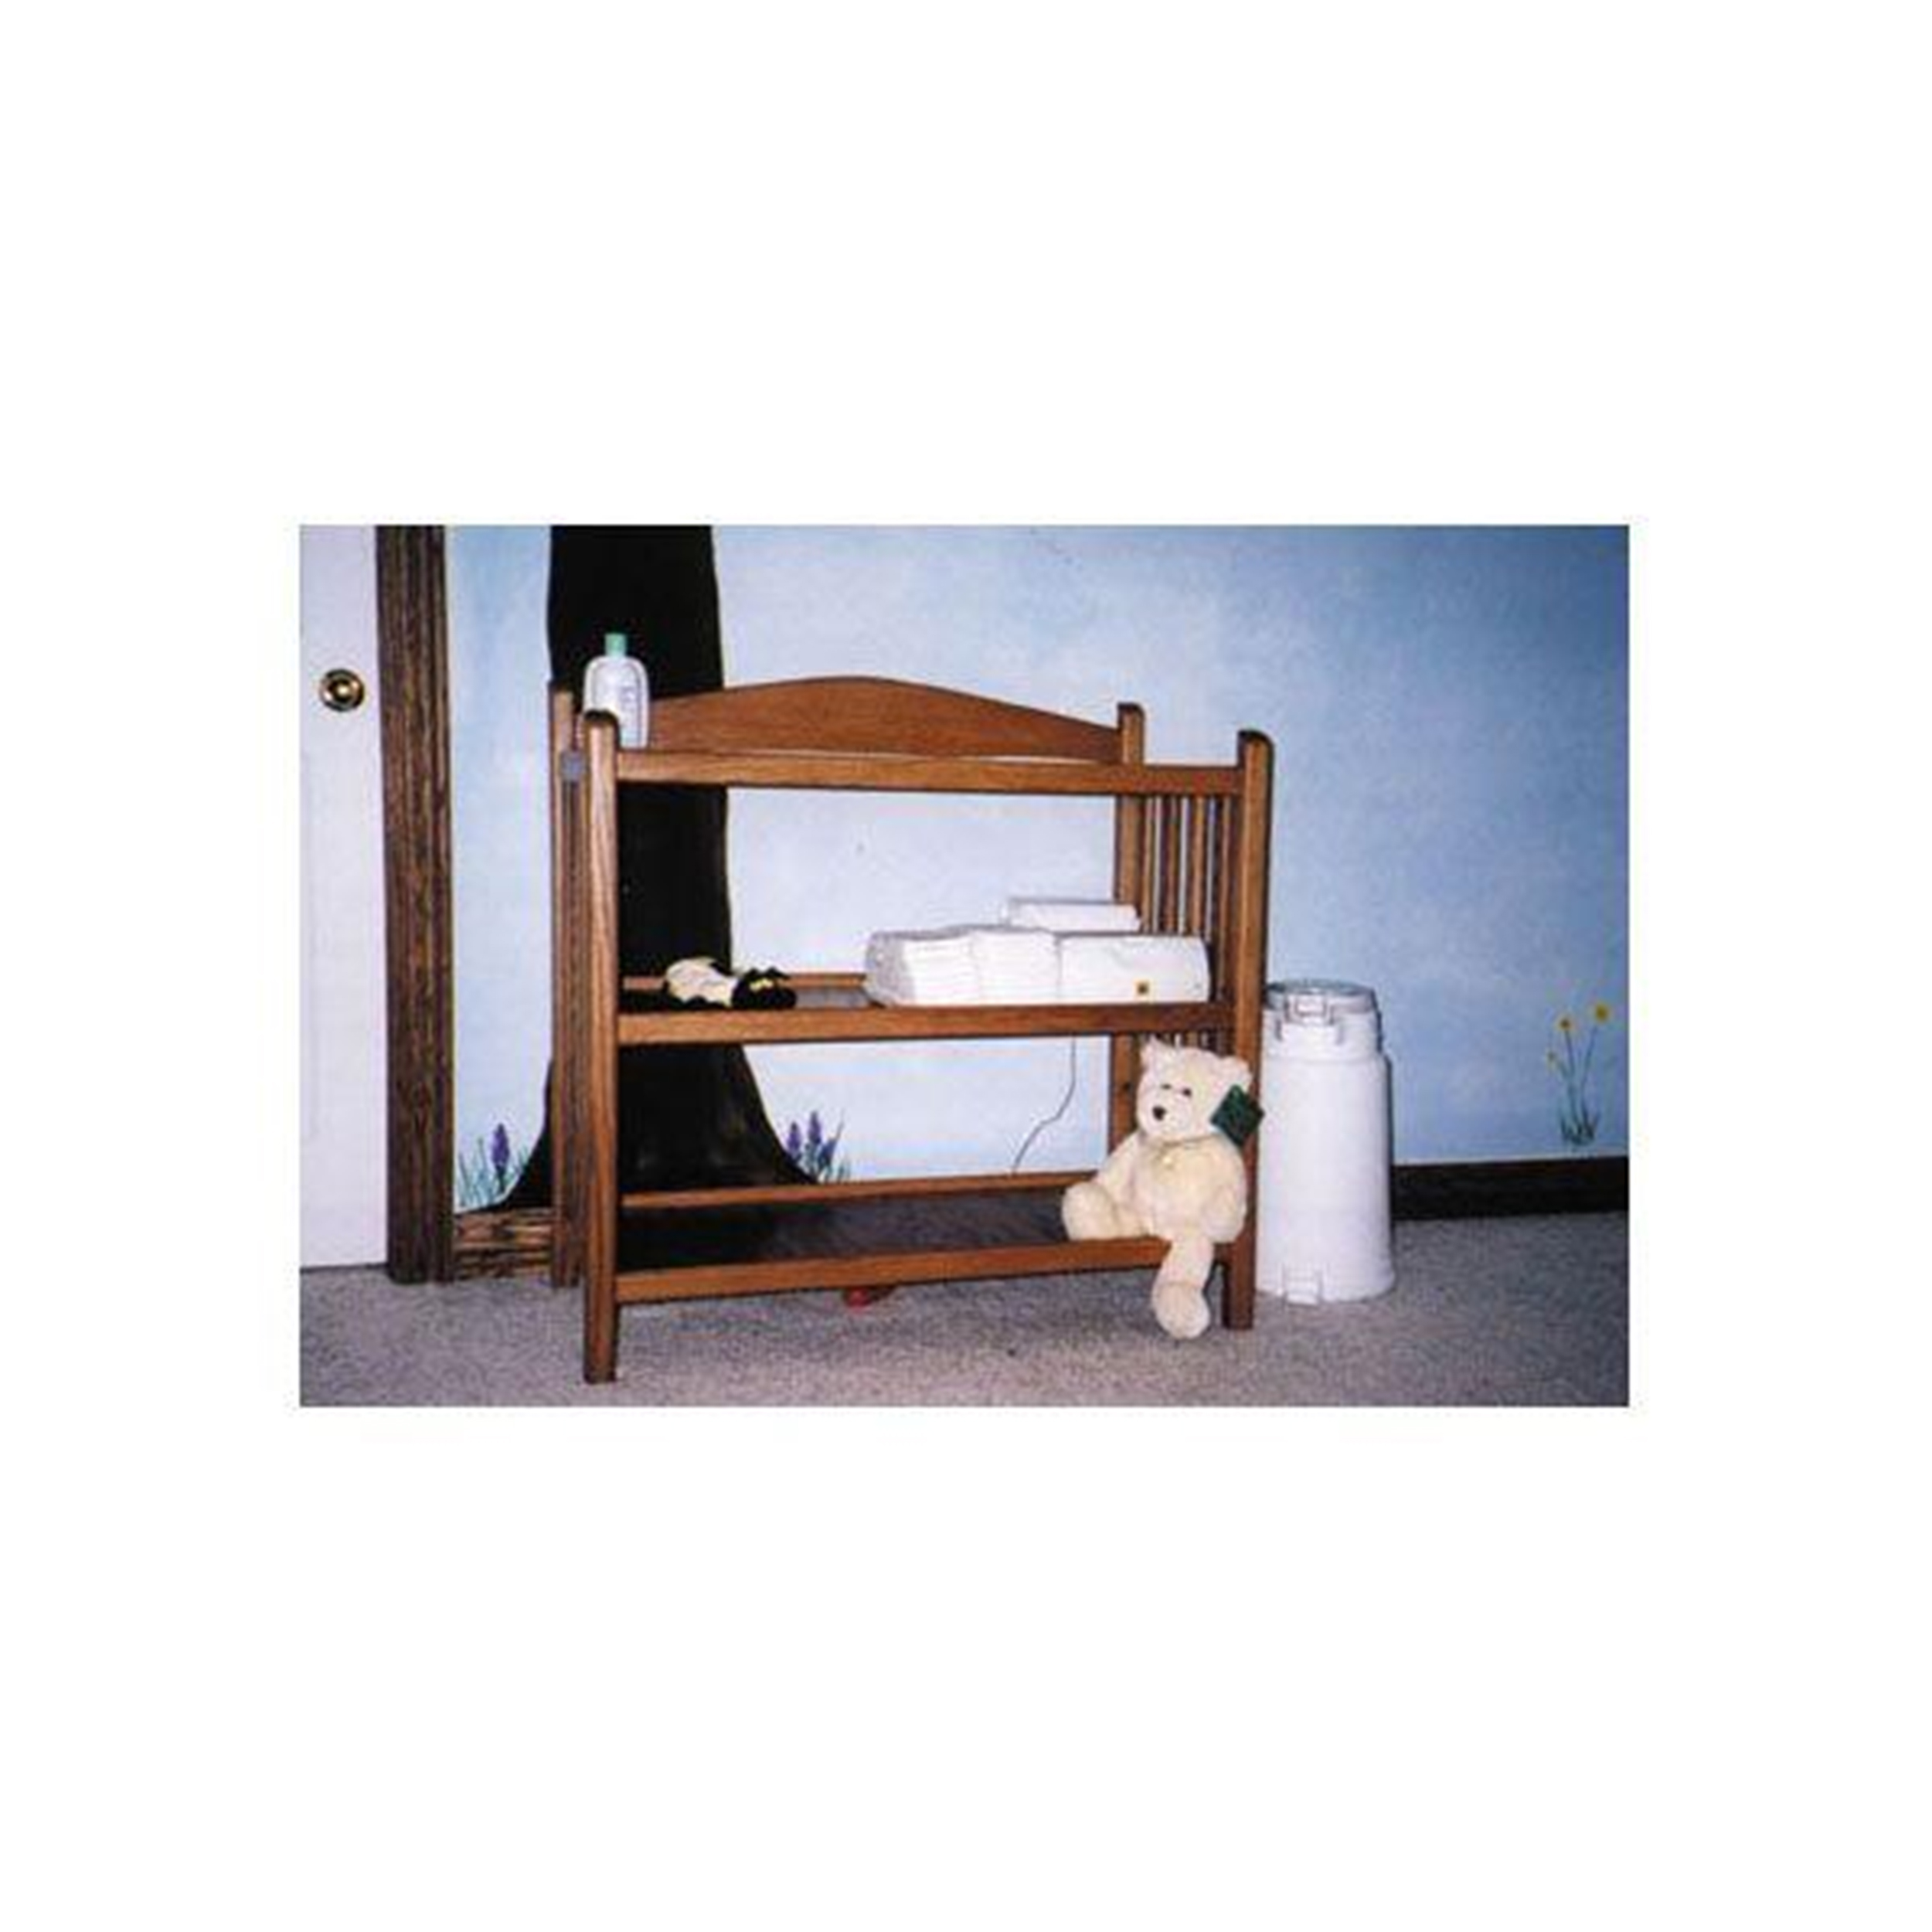 Woodworking Project Paper Plan to Build Changing Table